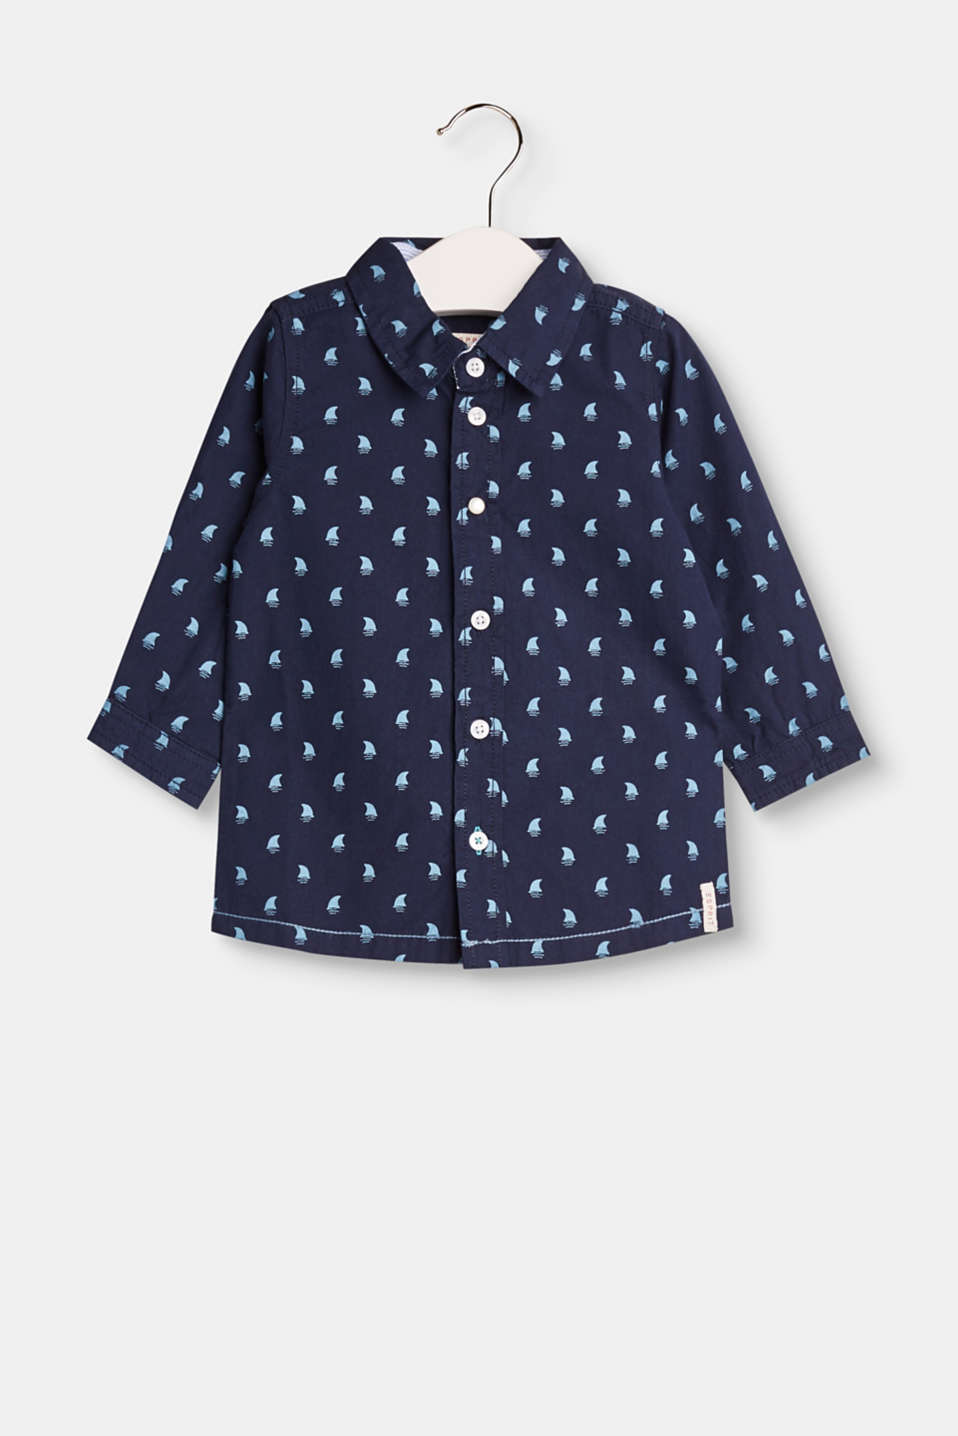 Esprit - Cotton shirt with an all-over print